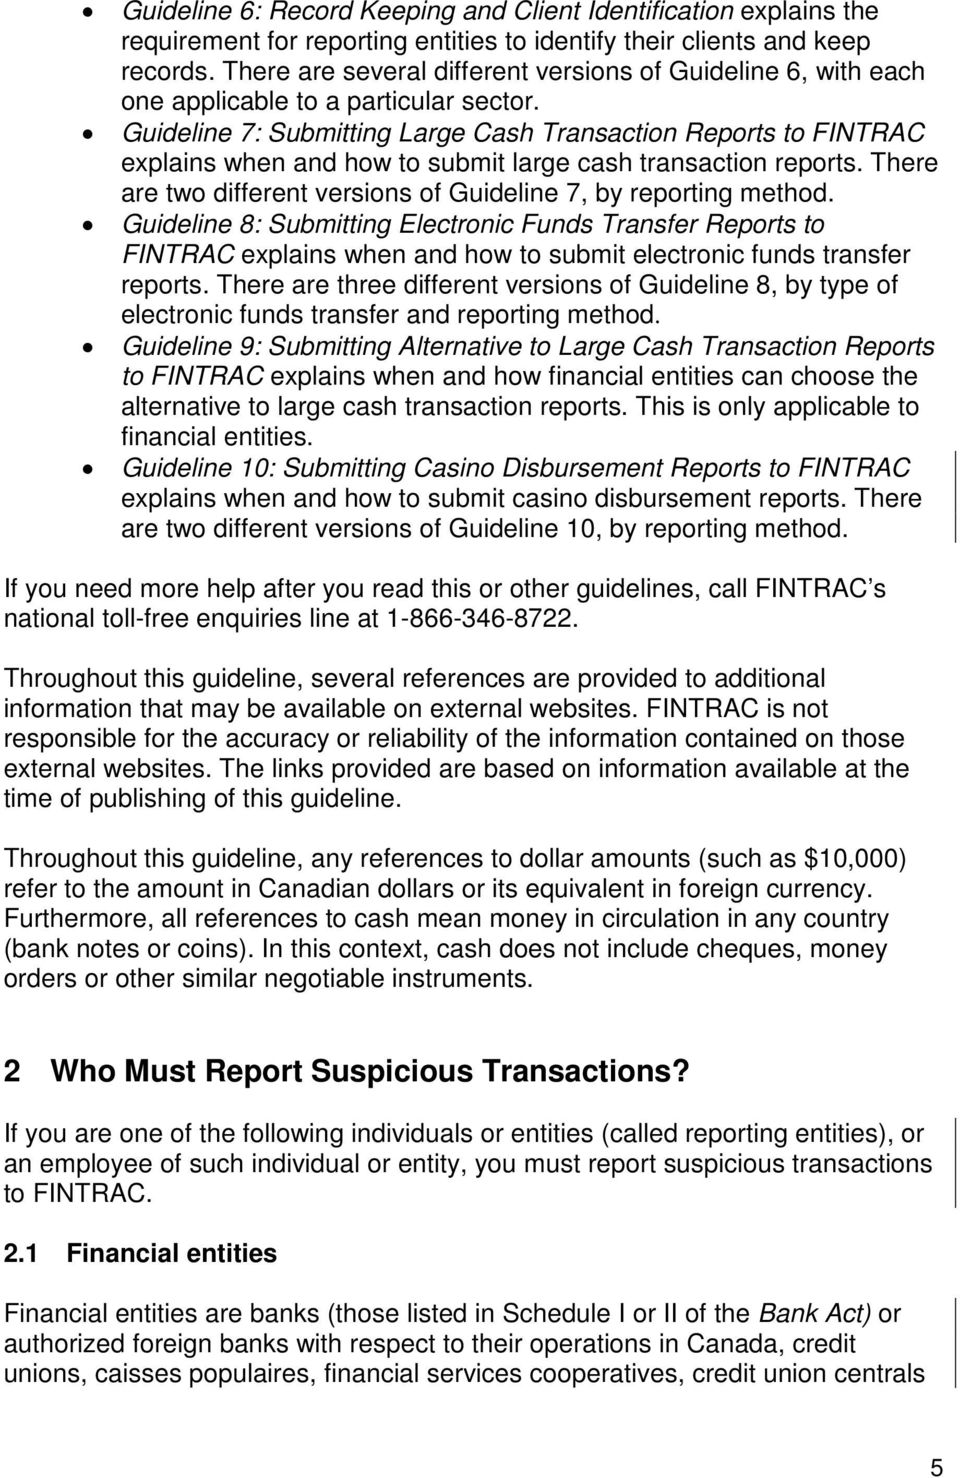 Guideline 7: Submitting Large Cash Transaction Reports to FINTRAC explains when and how to submit large cash transaction reports. There are two different versions of Guideline 7, by reporting method.